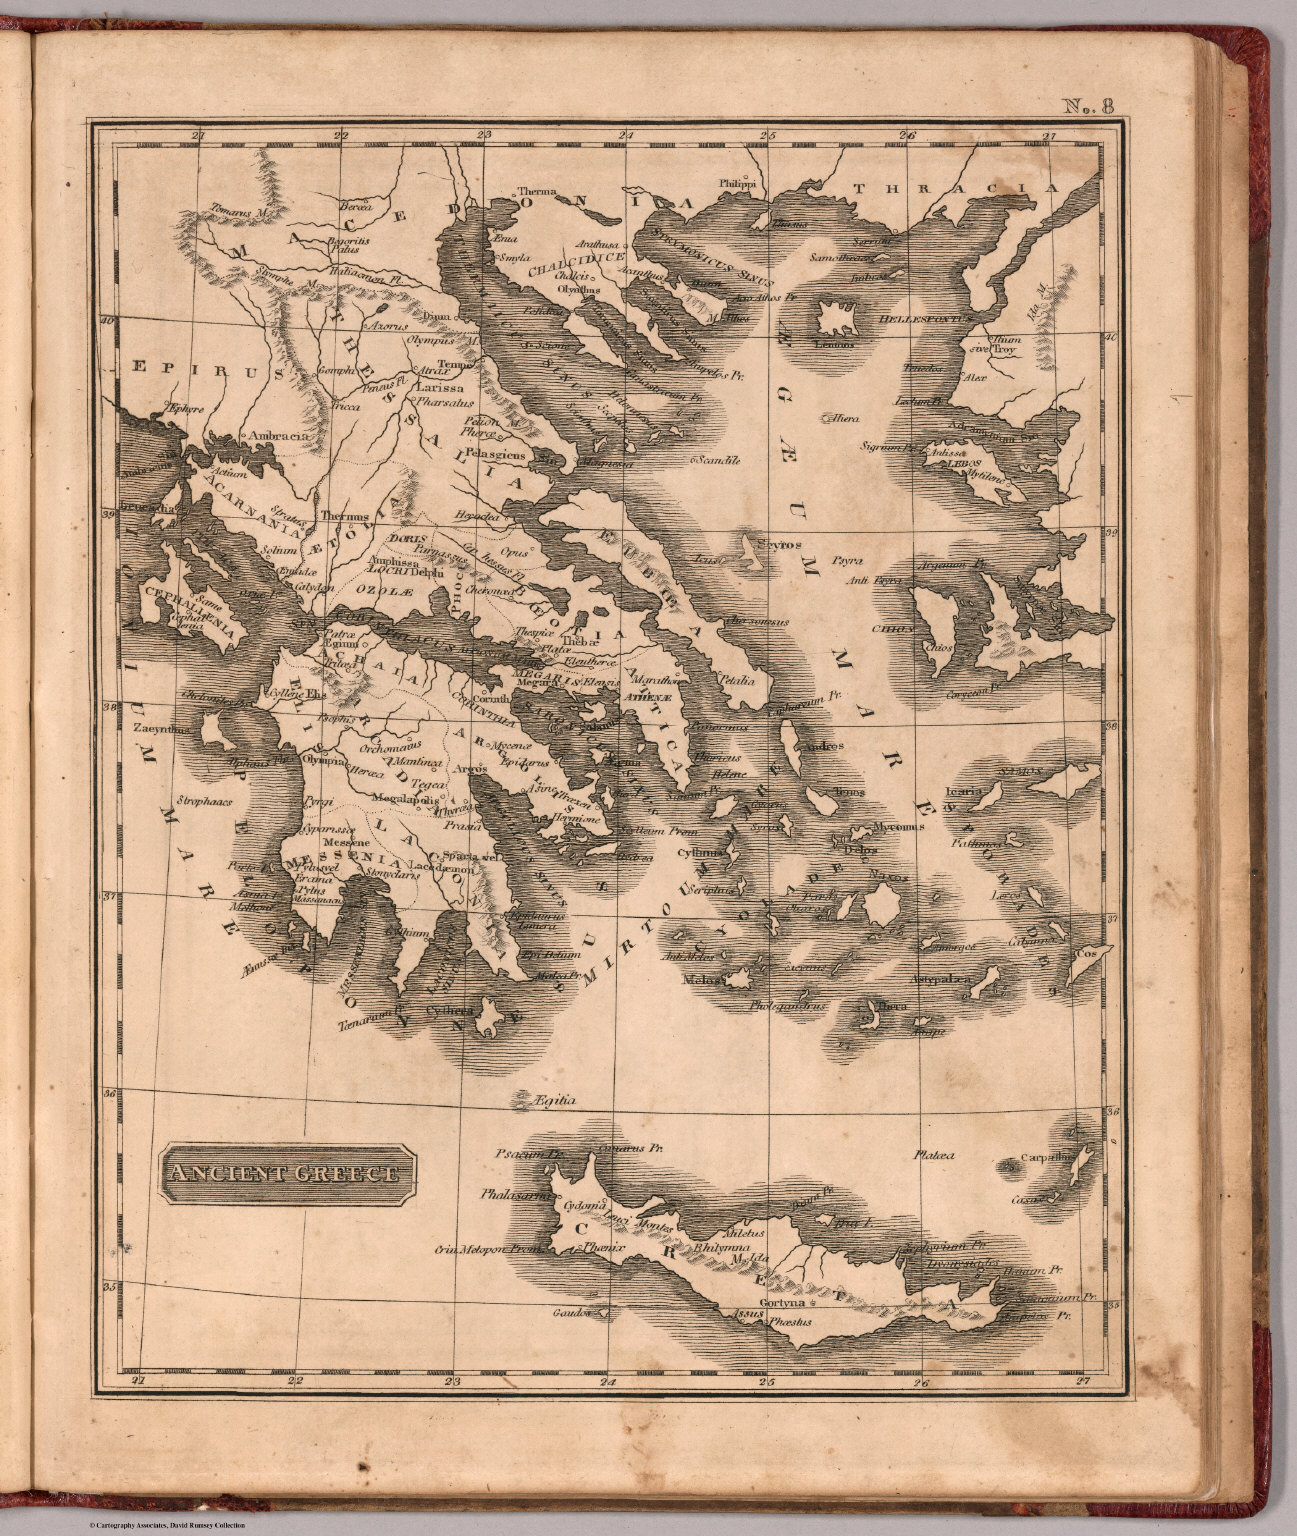 Ancient Greece David Rumsey Historical Map Collection